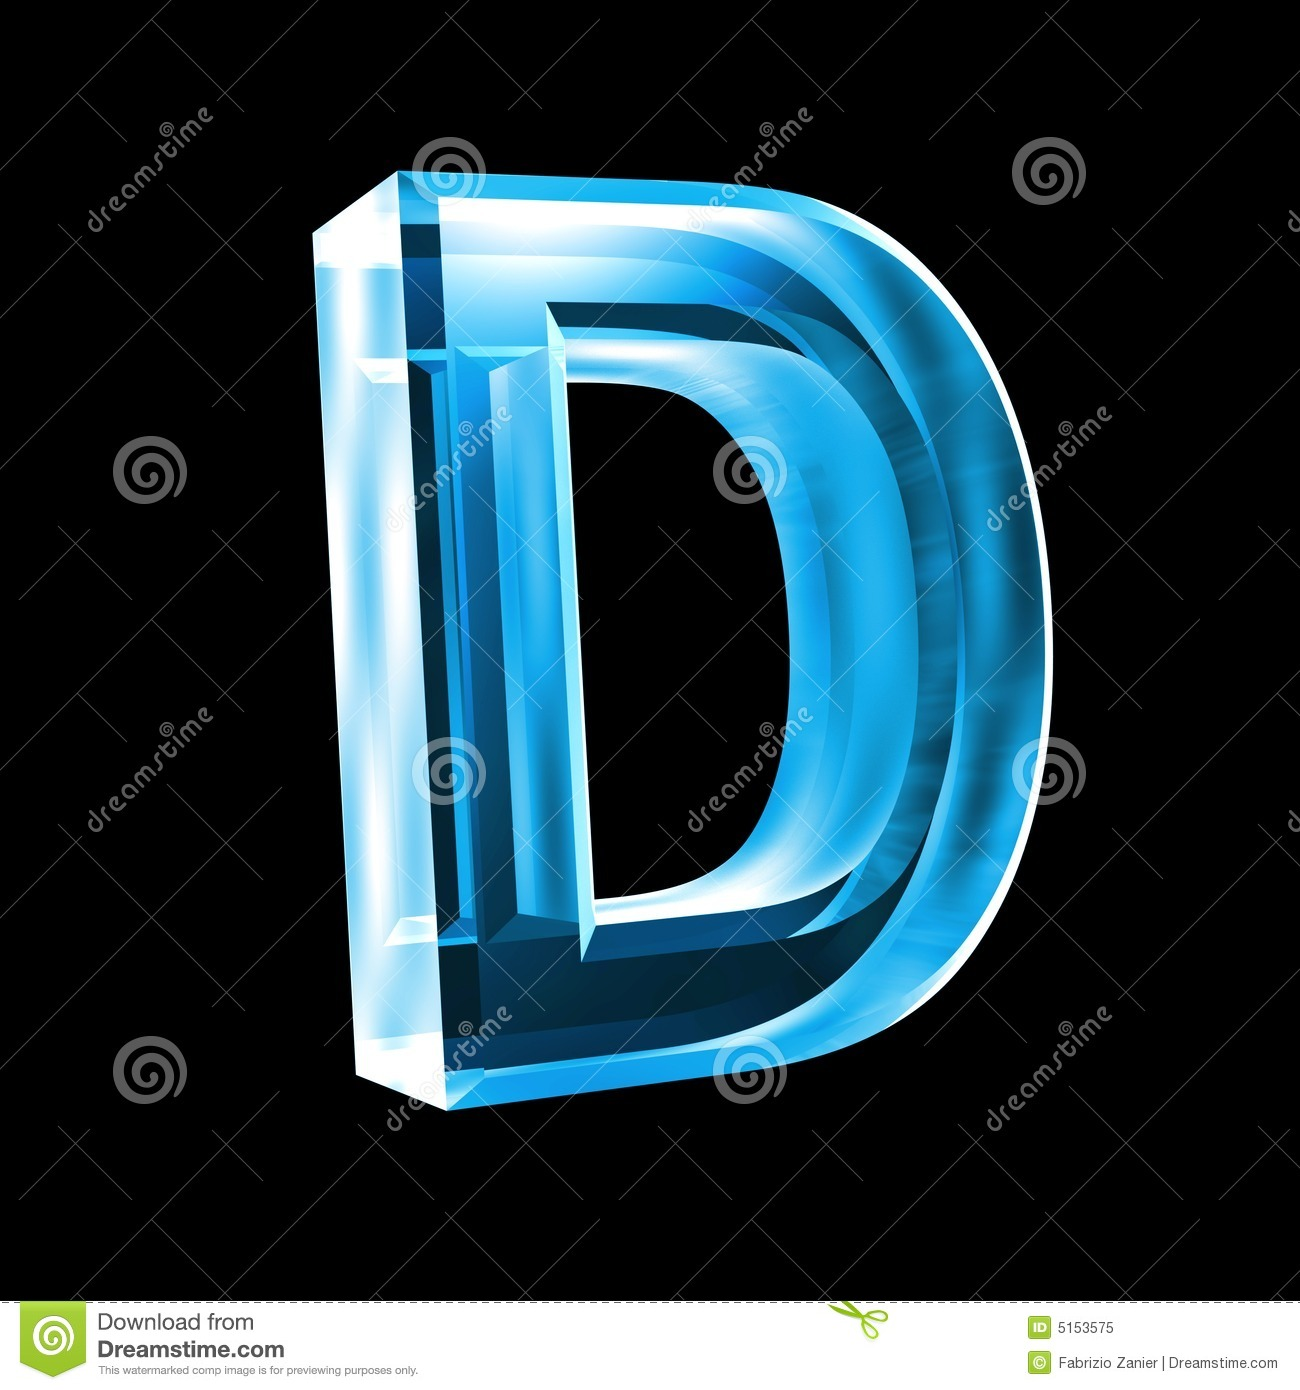 Letter D In Blue Glass 3D Royalty Free Stock Photo